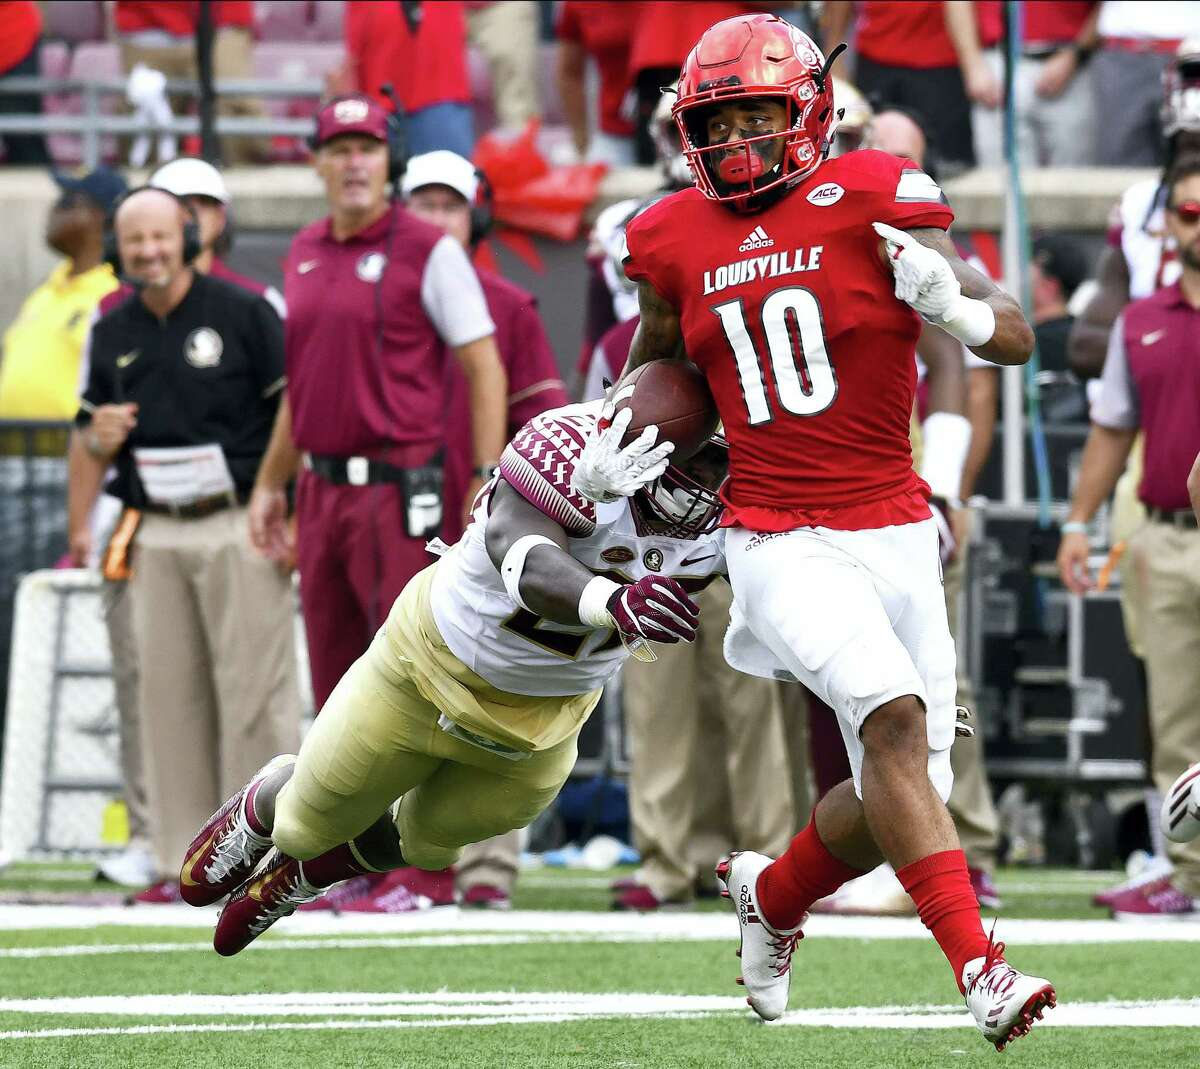 Florida State defensive back Malique Jackson tries to make a diving grab for Louisville's Jaire Alexander during the second half Saturday. Louisville won 63-20.